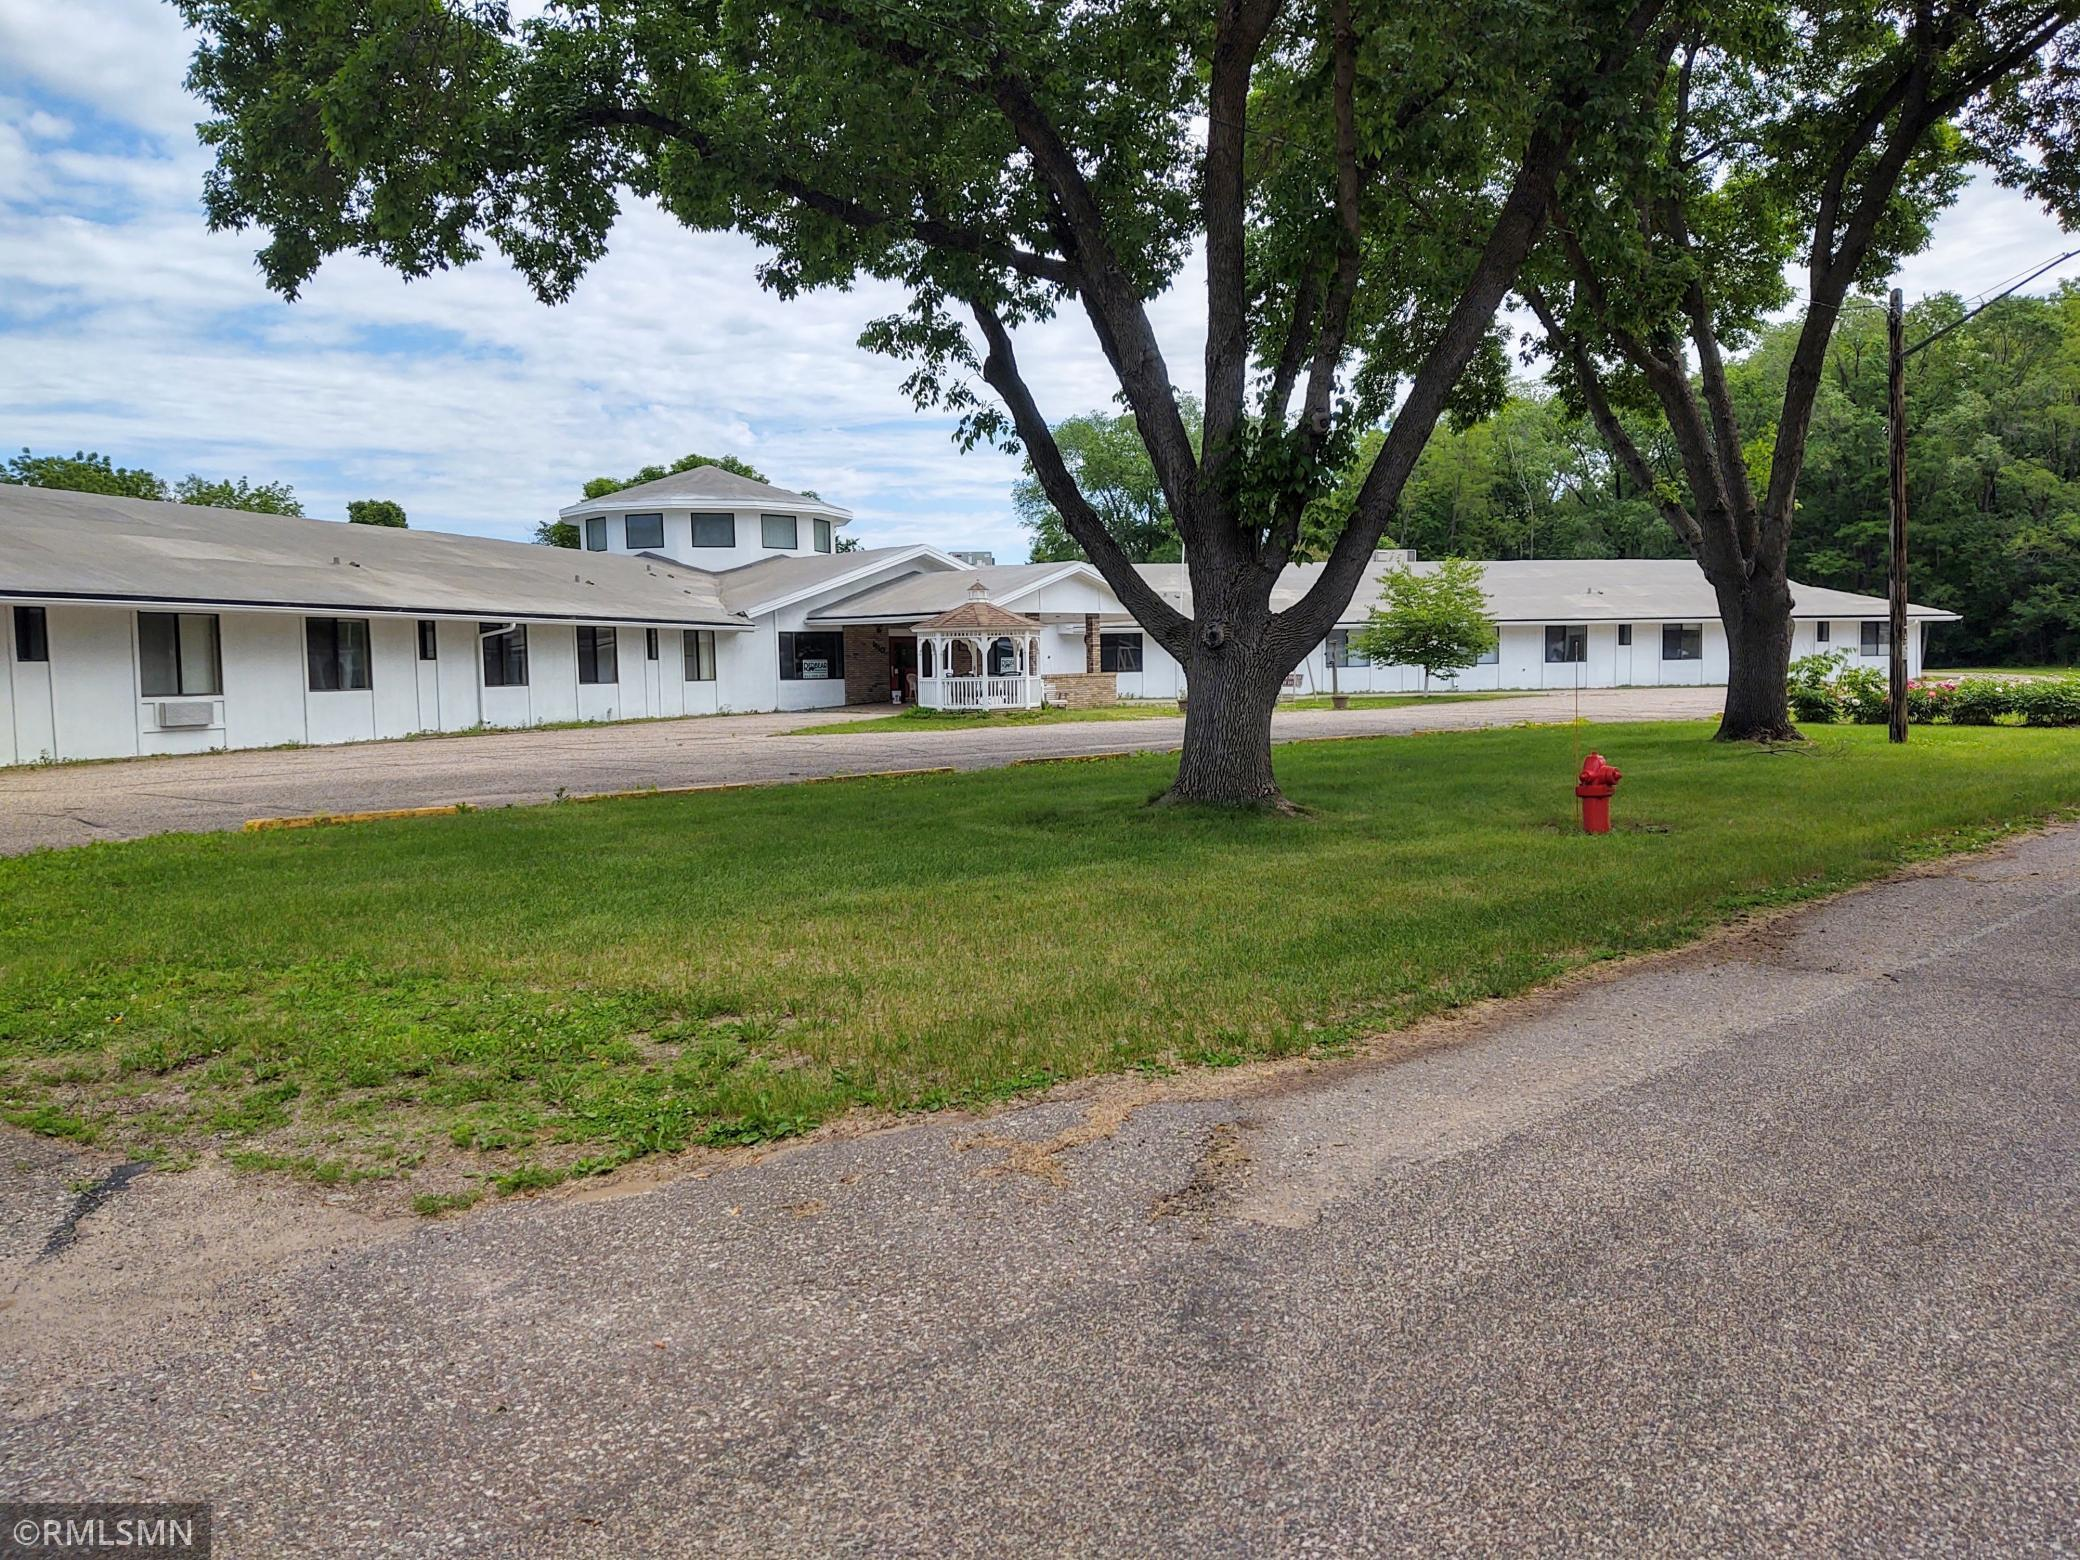 1110 2nd Street Property Photo - Pepin, WI real estate listing